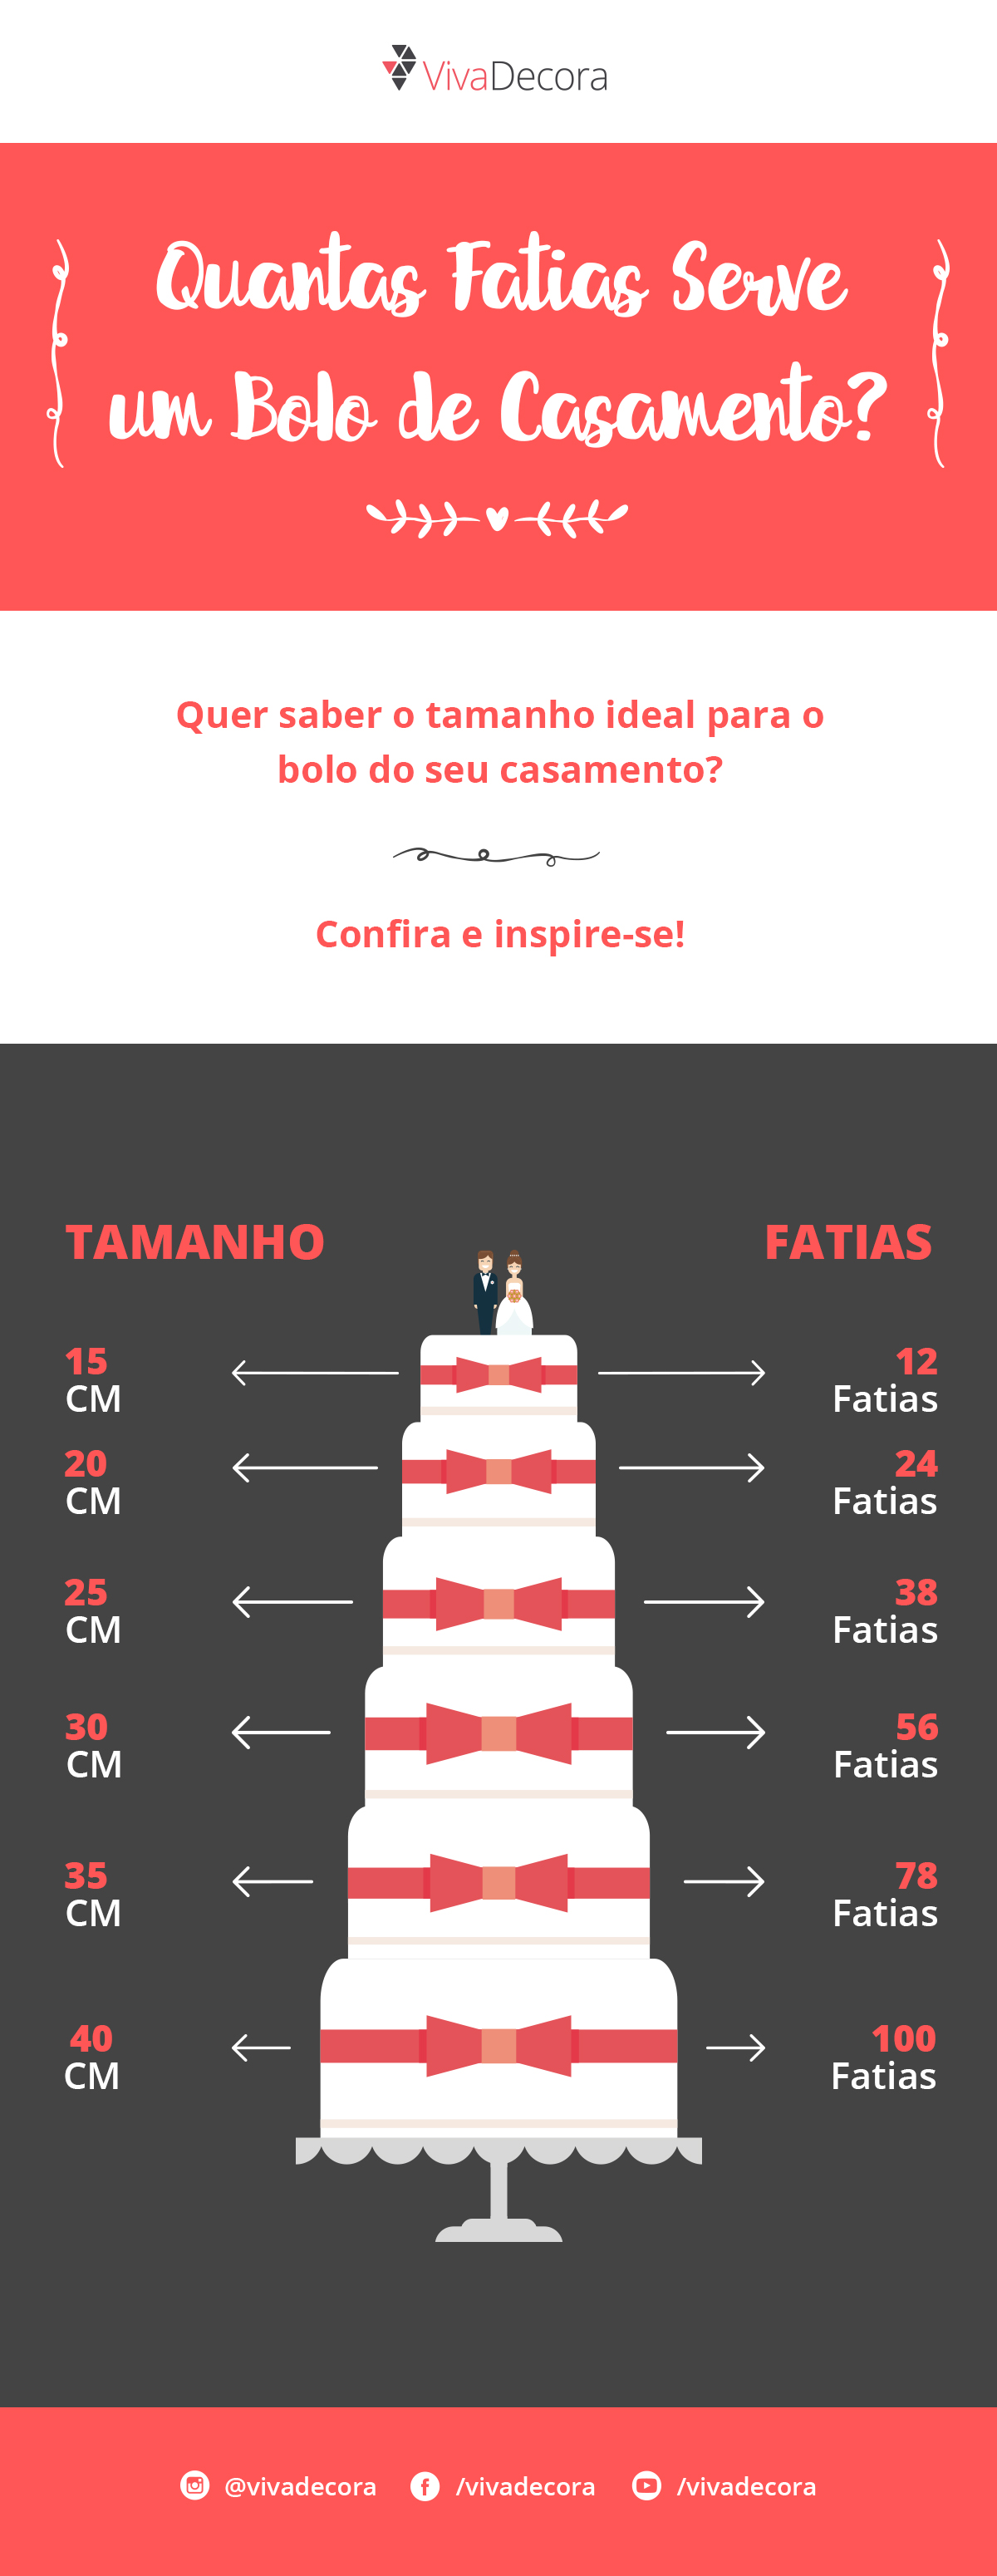 Infographic - How many slices does a wedding cake serve?